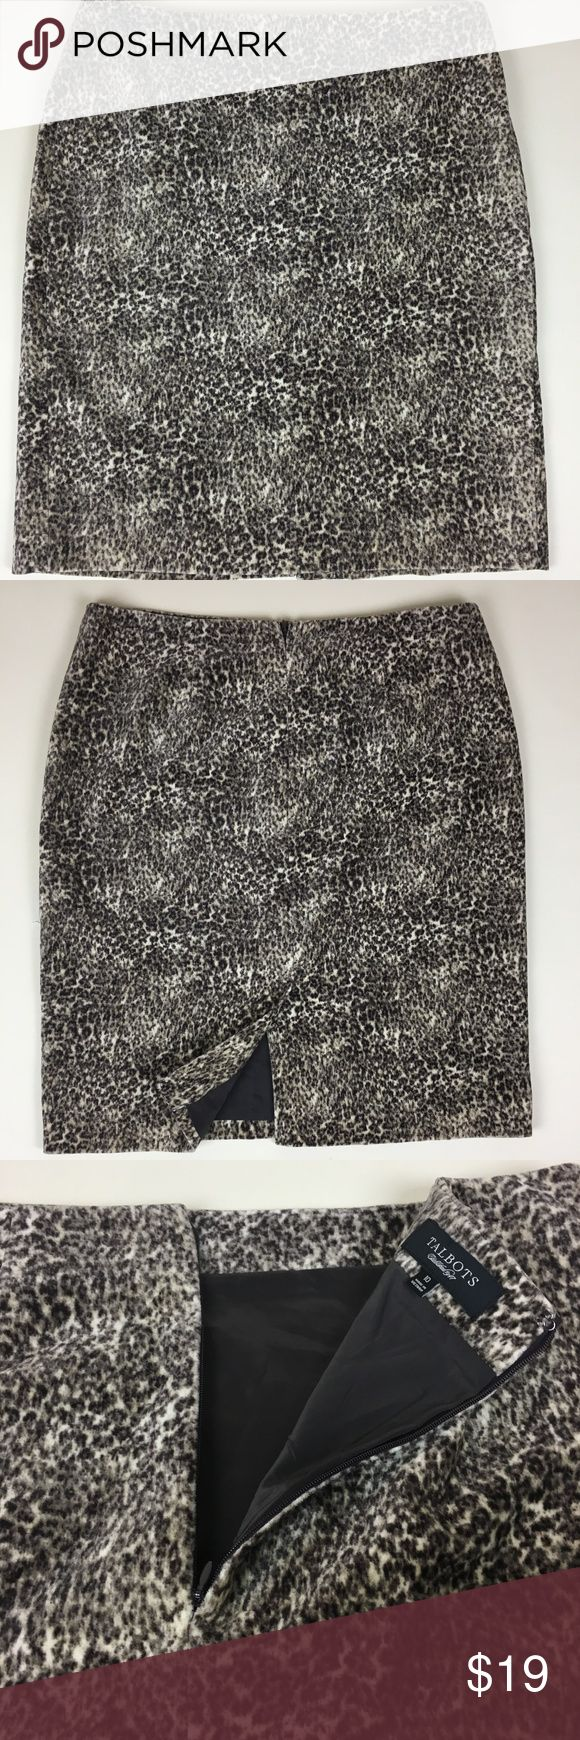 Talbots Skirt Velvet Leopard Animal Print Size 10 I think every woman needs a leopard print skirt. It's always going to be in style.  This one is very chic and stylish for the cooler months and is an appropriate length for work and other occasions. Length measures 22 inches.  It's a velvet-style pencil skirt in a size 10.  It has a modest slit in the back that measures 7 inches.  Back zipper closure. 100% cotton shell. Fully lined with 100% polyester.  In excellent pre-owned condition…